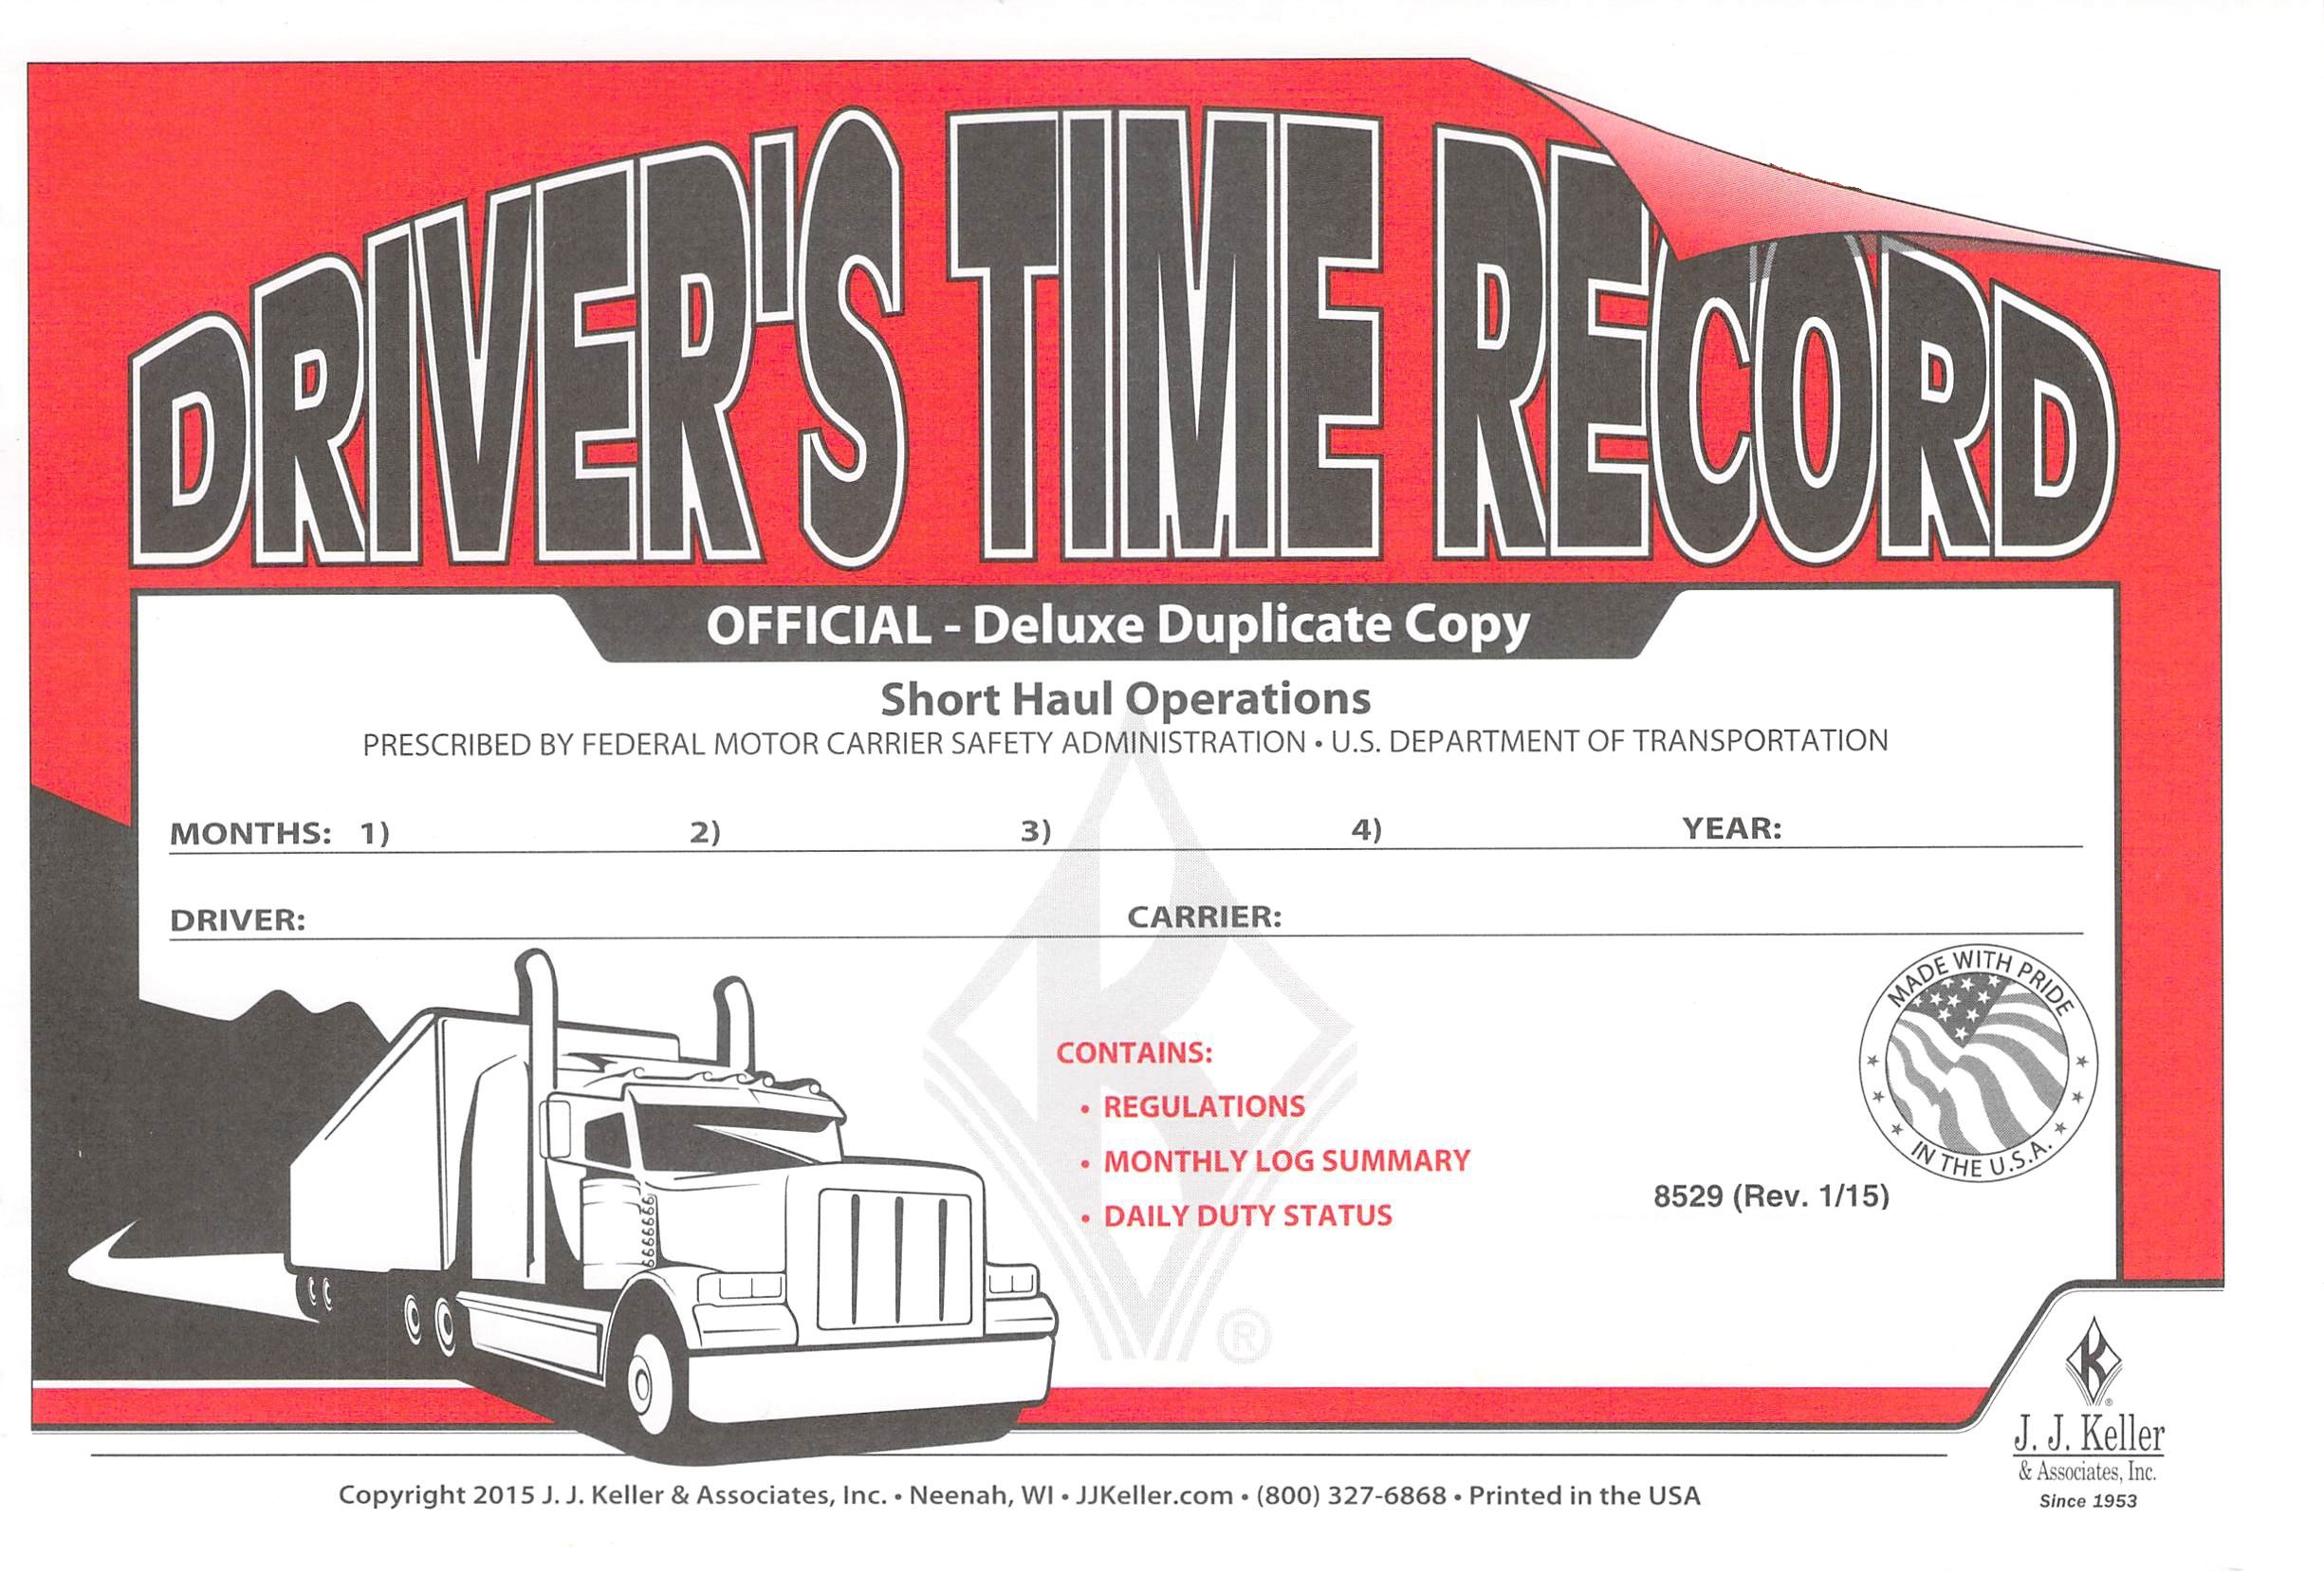 J.J. Keller 8529 (691L) Drivers Exemption Log Book- Short-Haul Operations 50 Pack by J.J. Keller